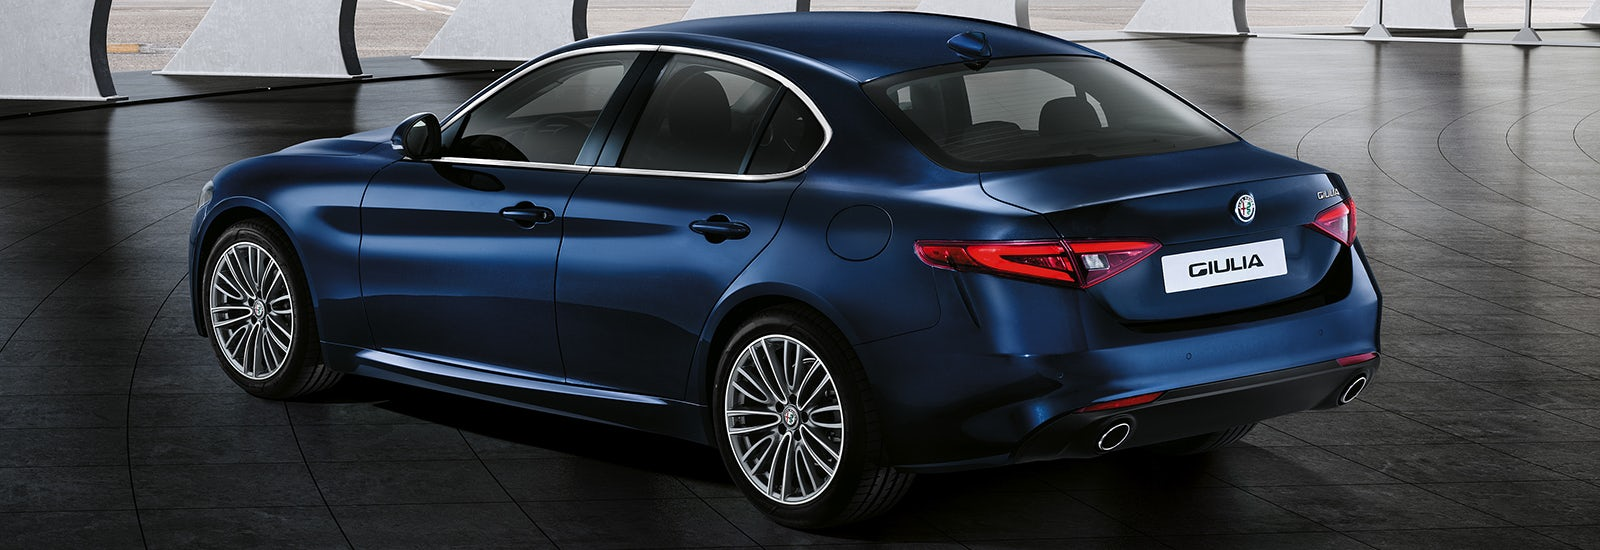 2019 alfa romeo giulia coupe gtv price, specs and release date | carwow